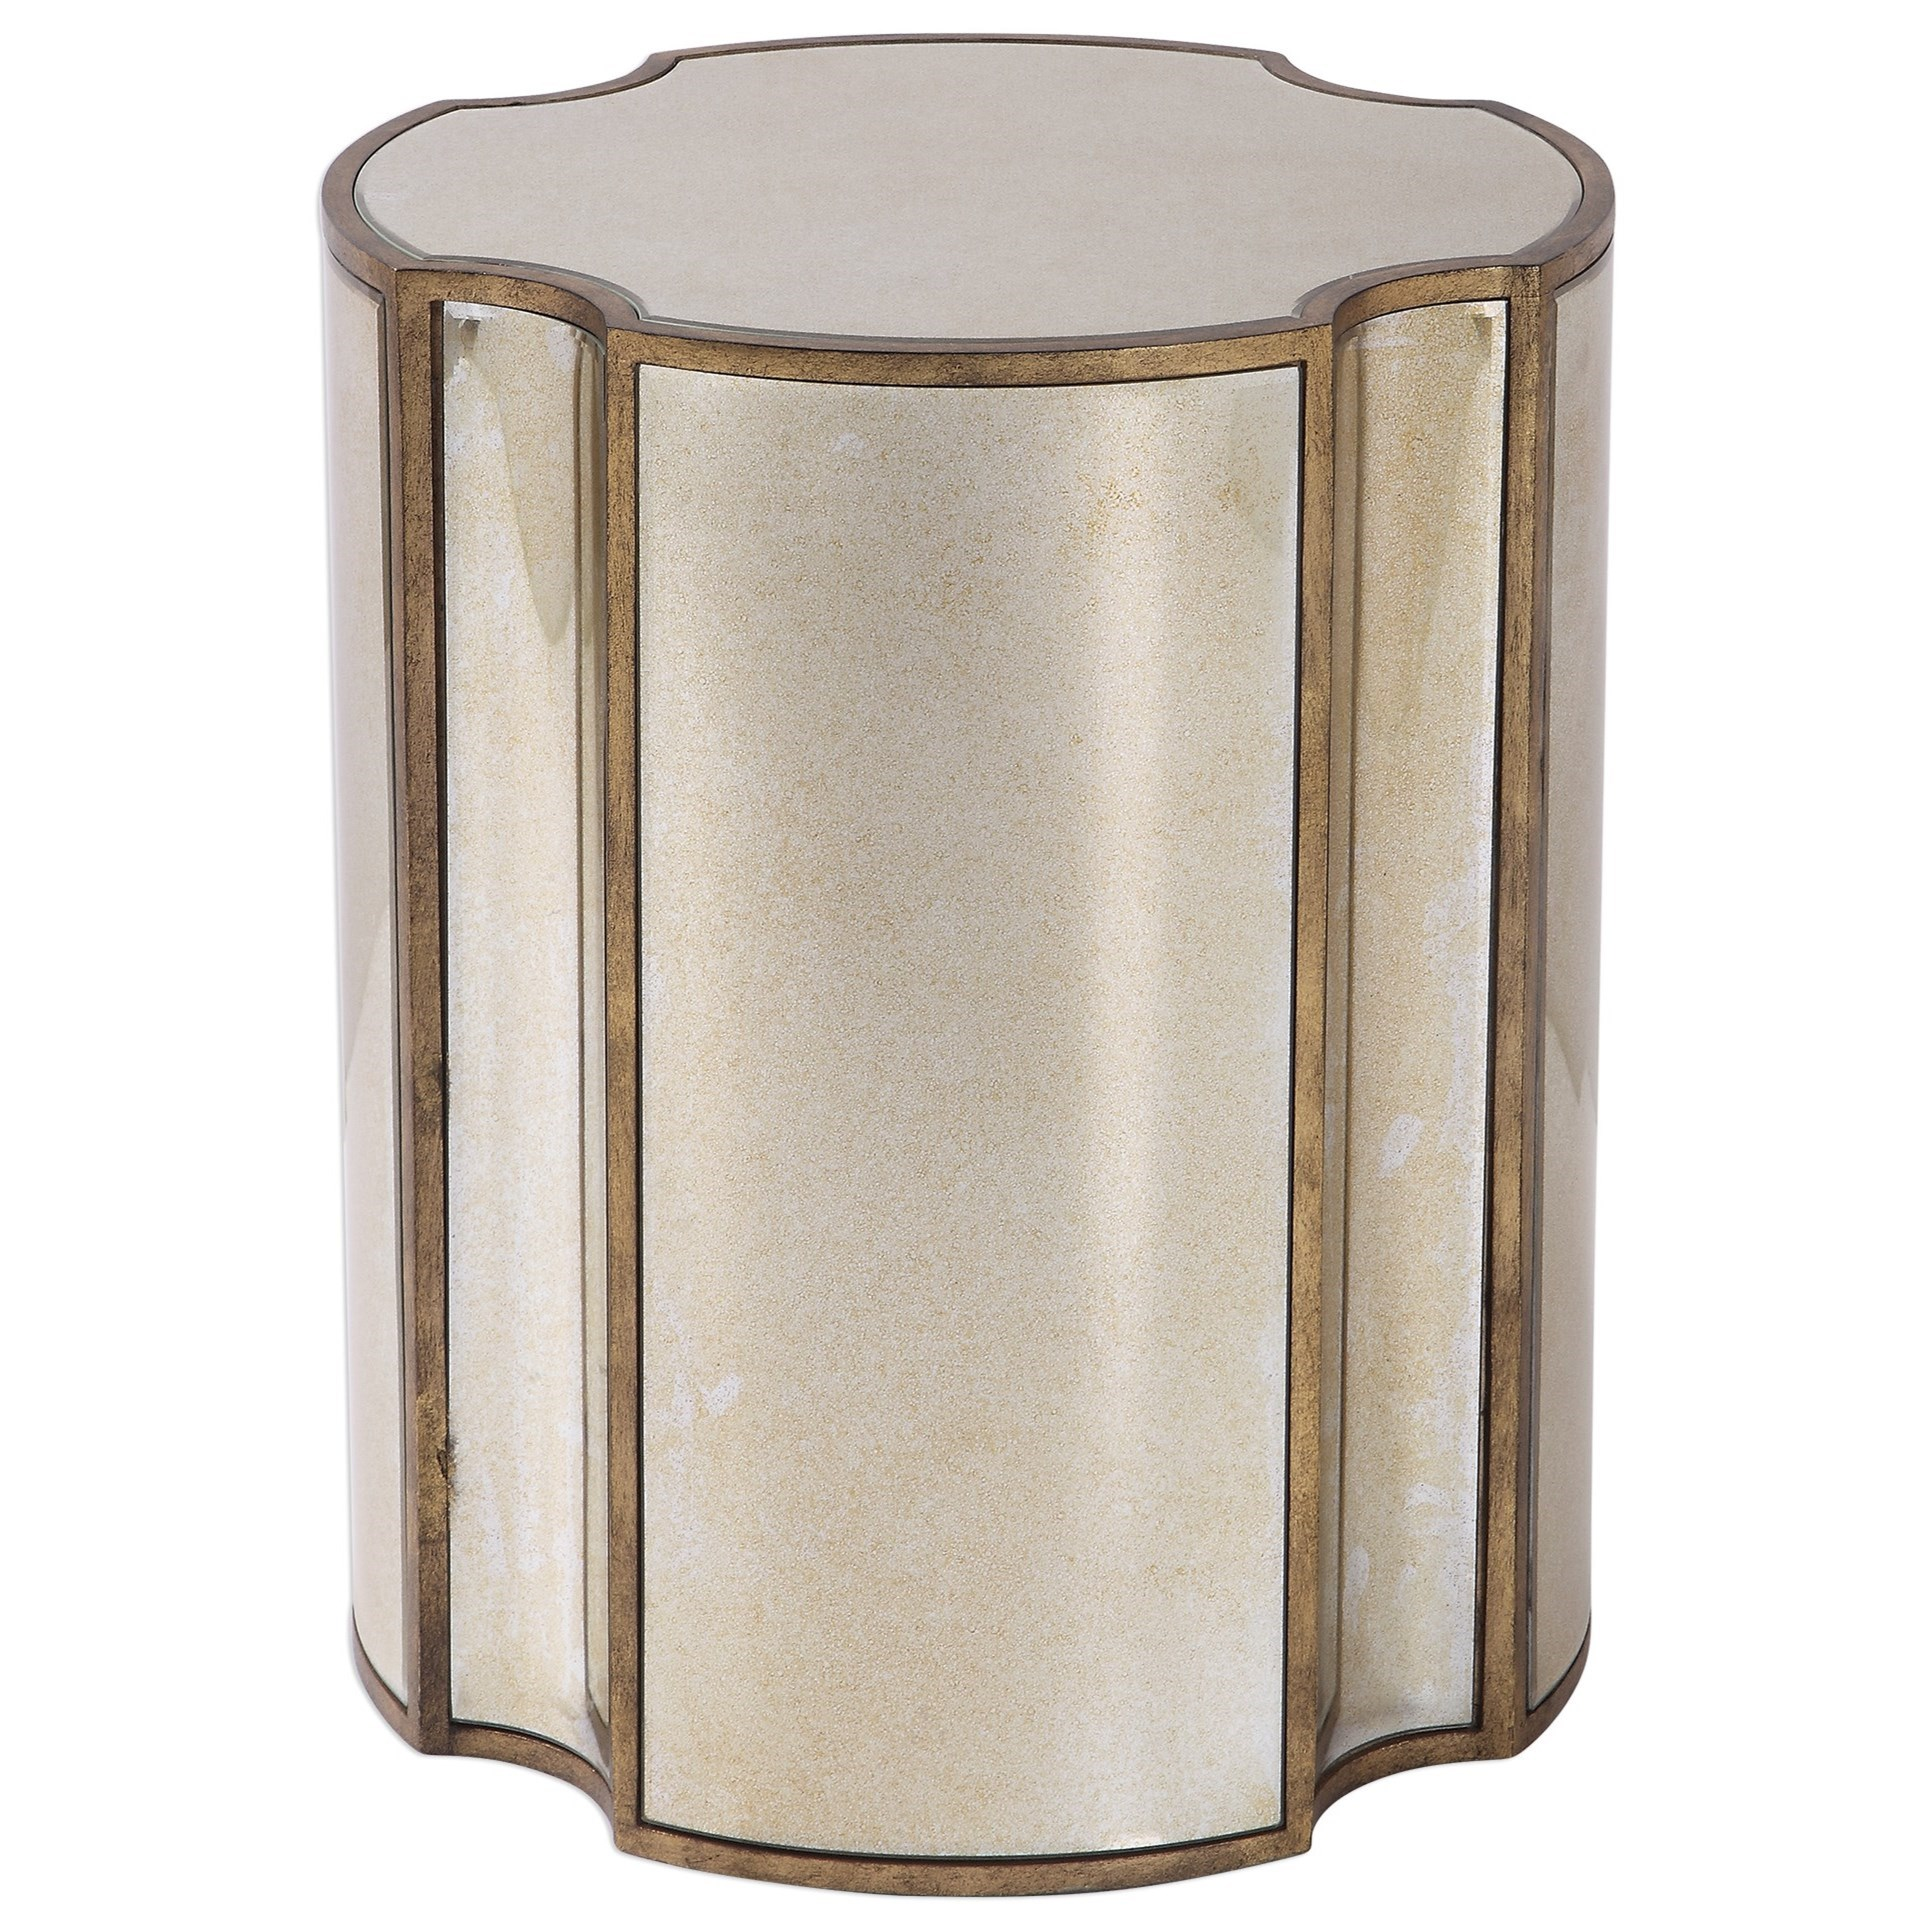 Accent Furniture - Occasional Tables Harlow Mirrored Accent Table by Uttermost at O'Dunk & O'Bright Furniture